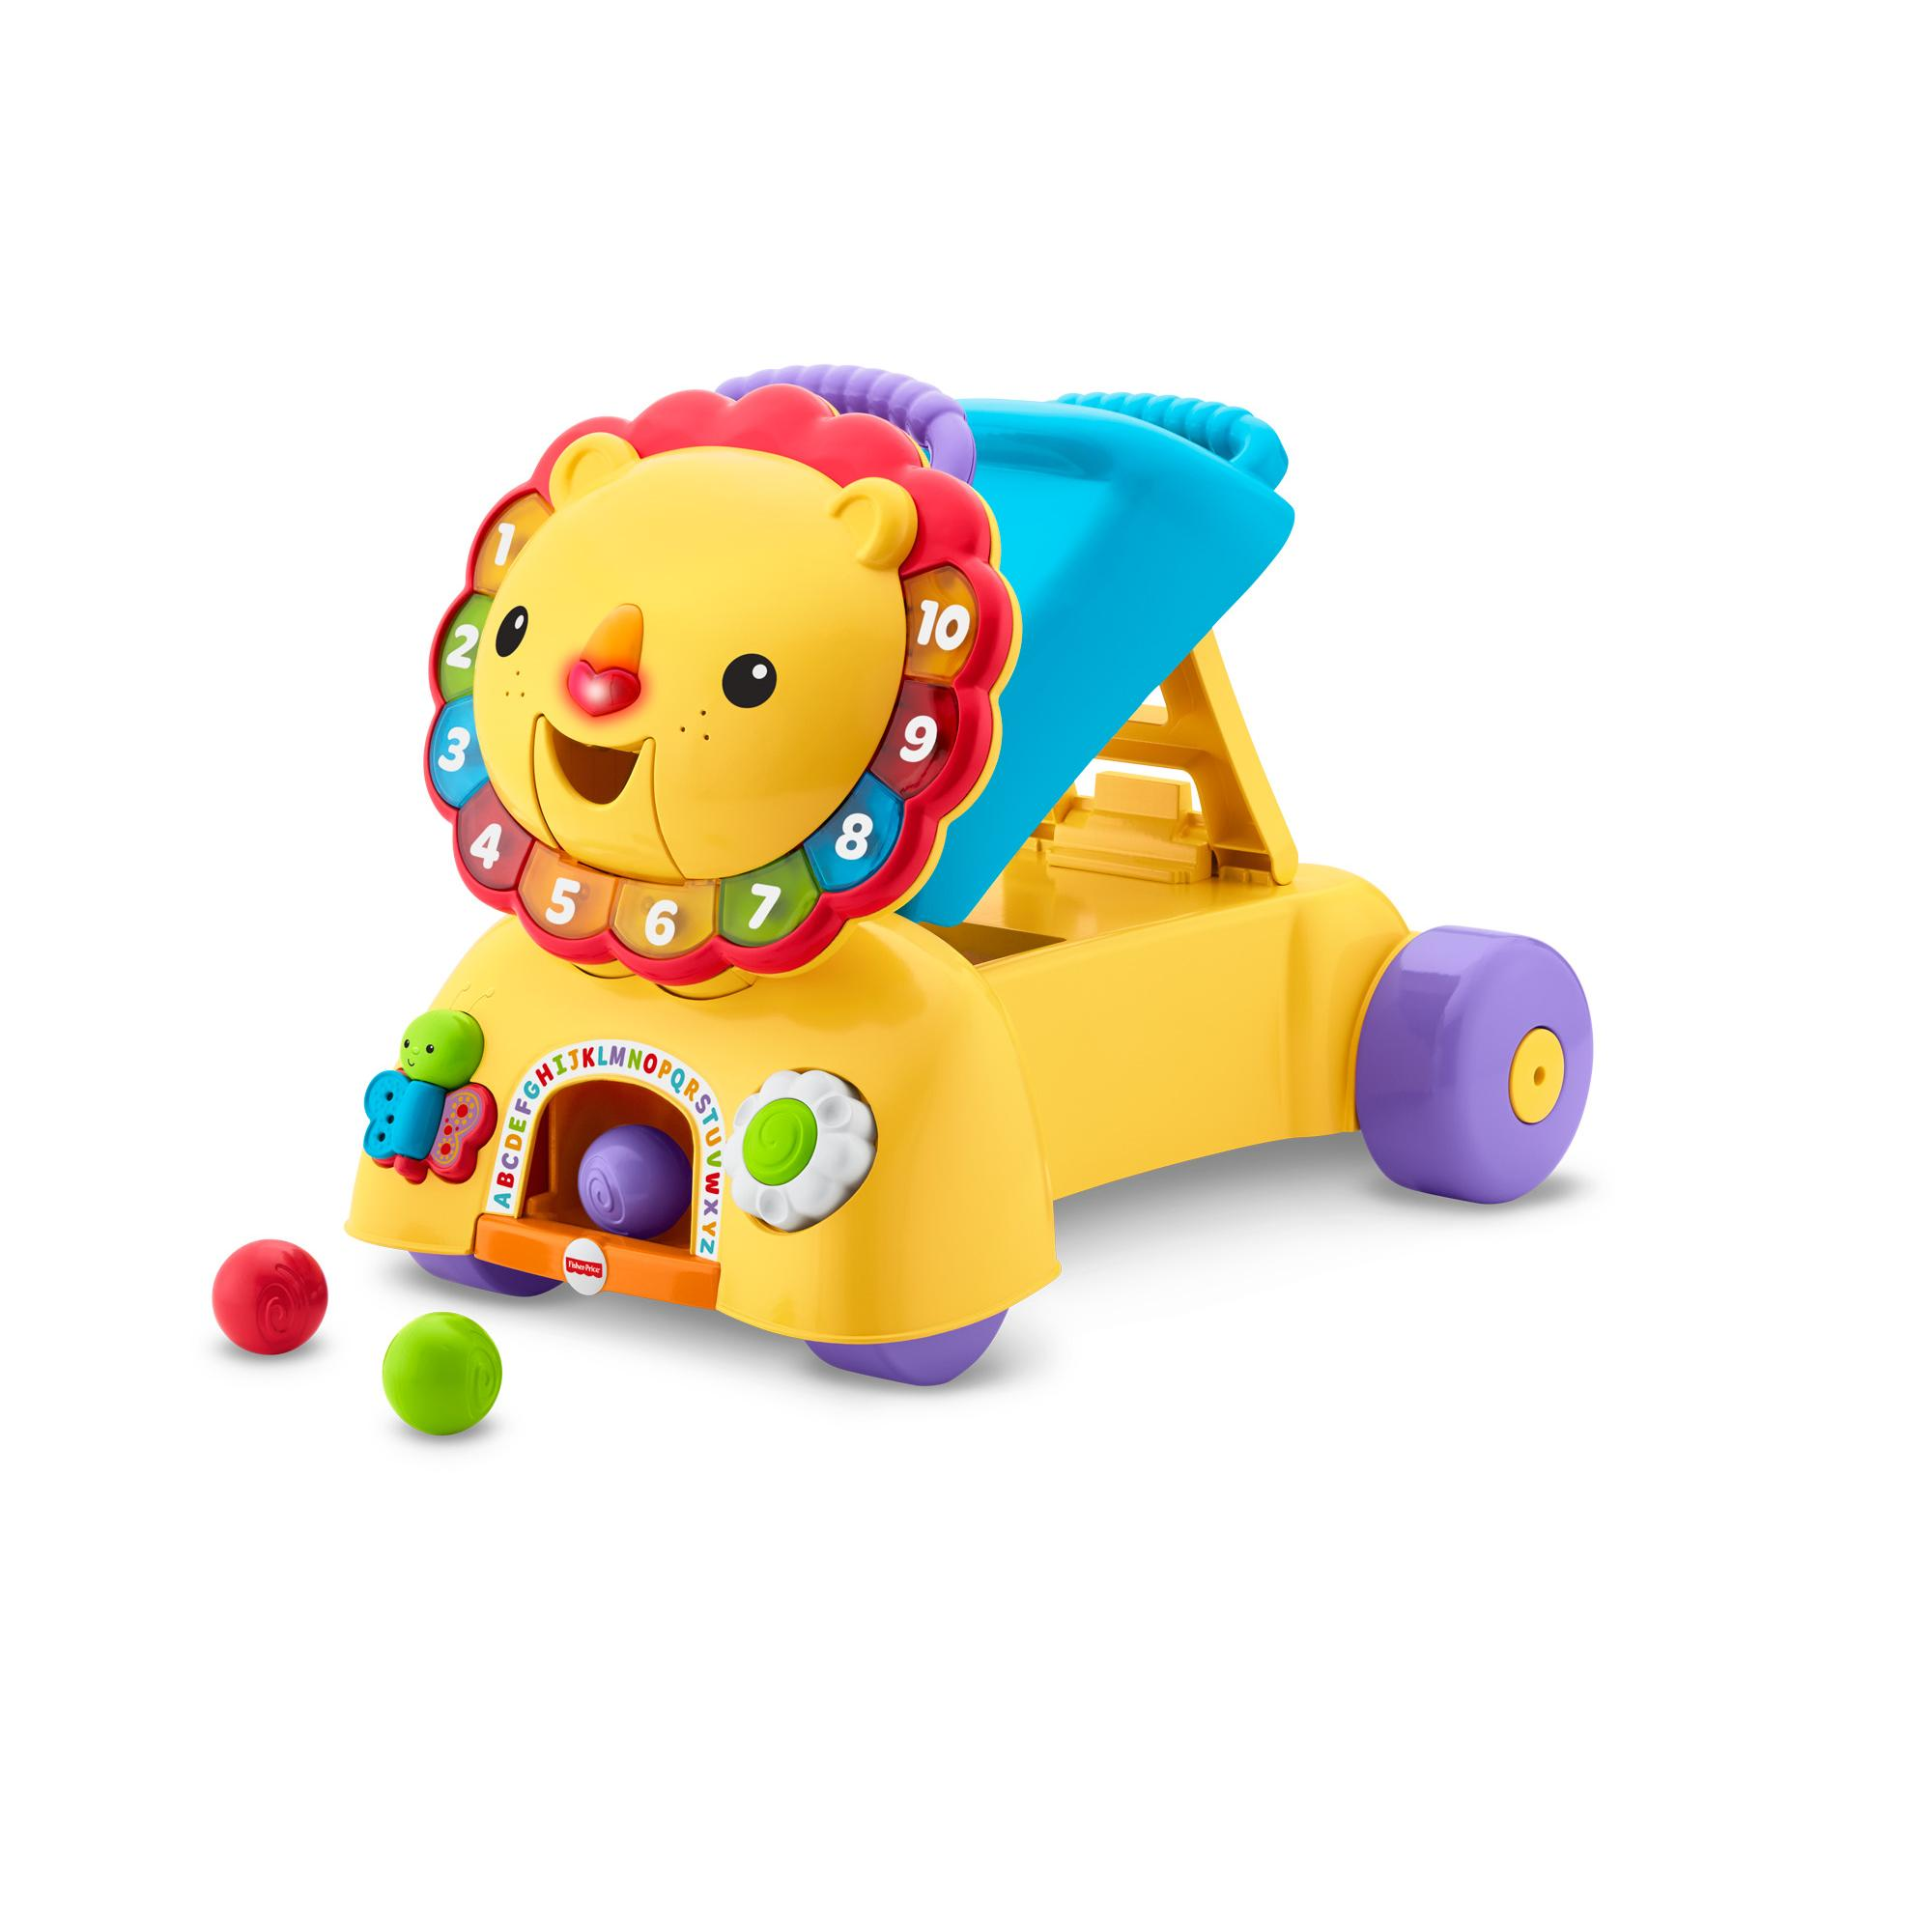 Fisher Price 3-in-1 Sit, Stride and Ride Lion